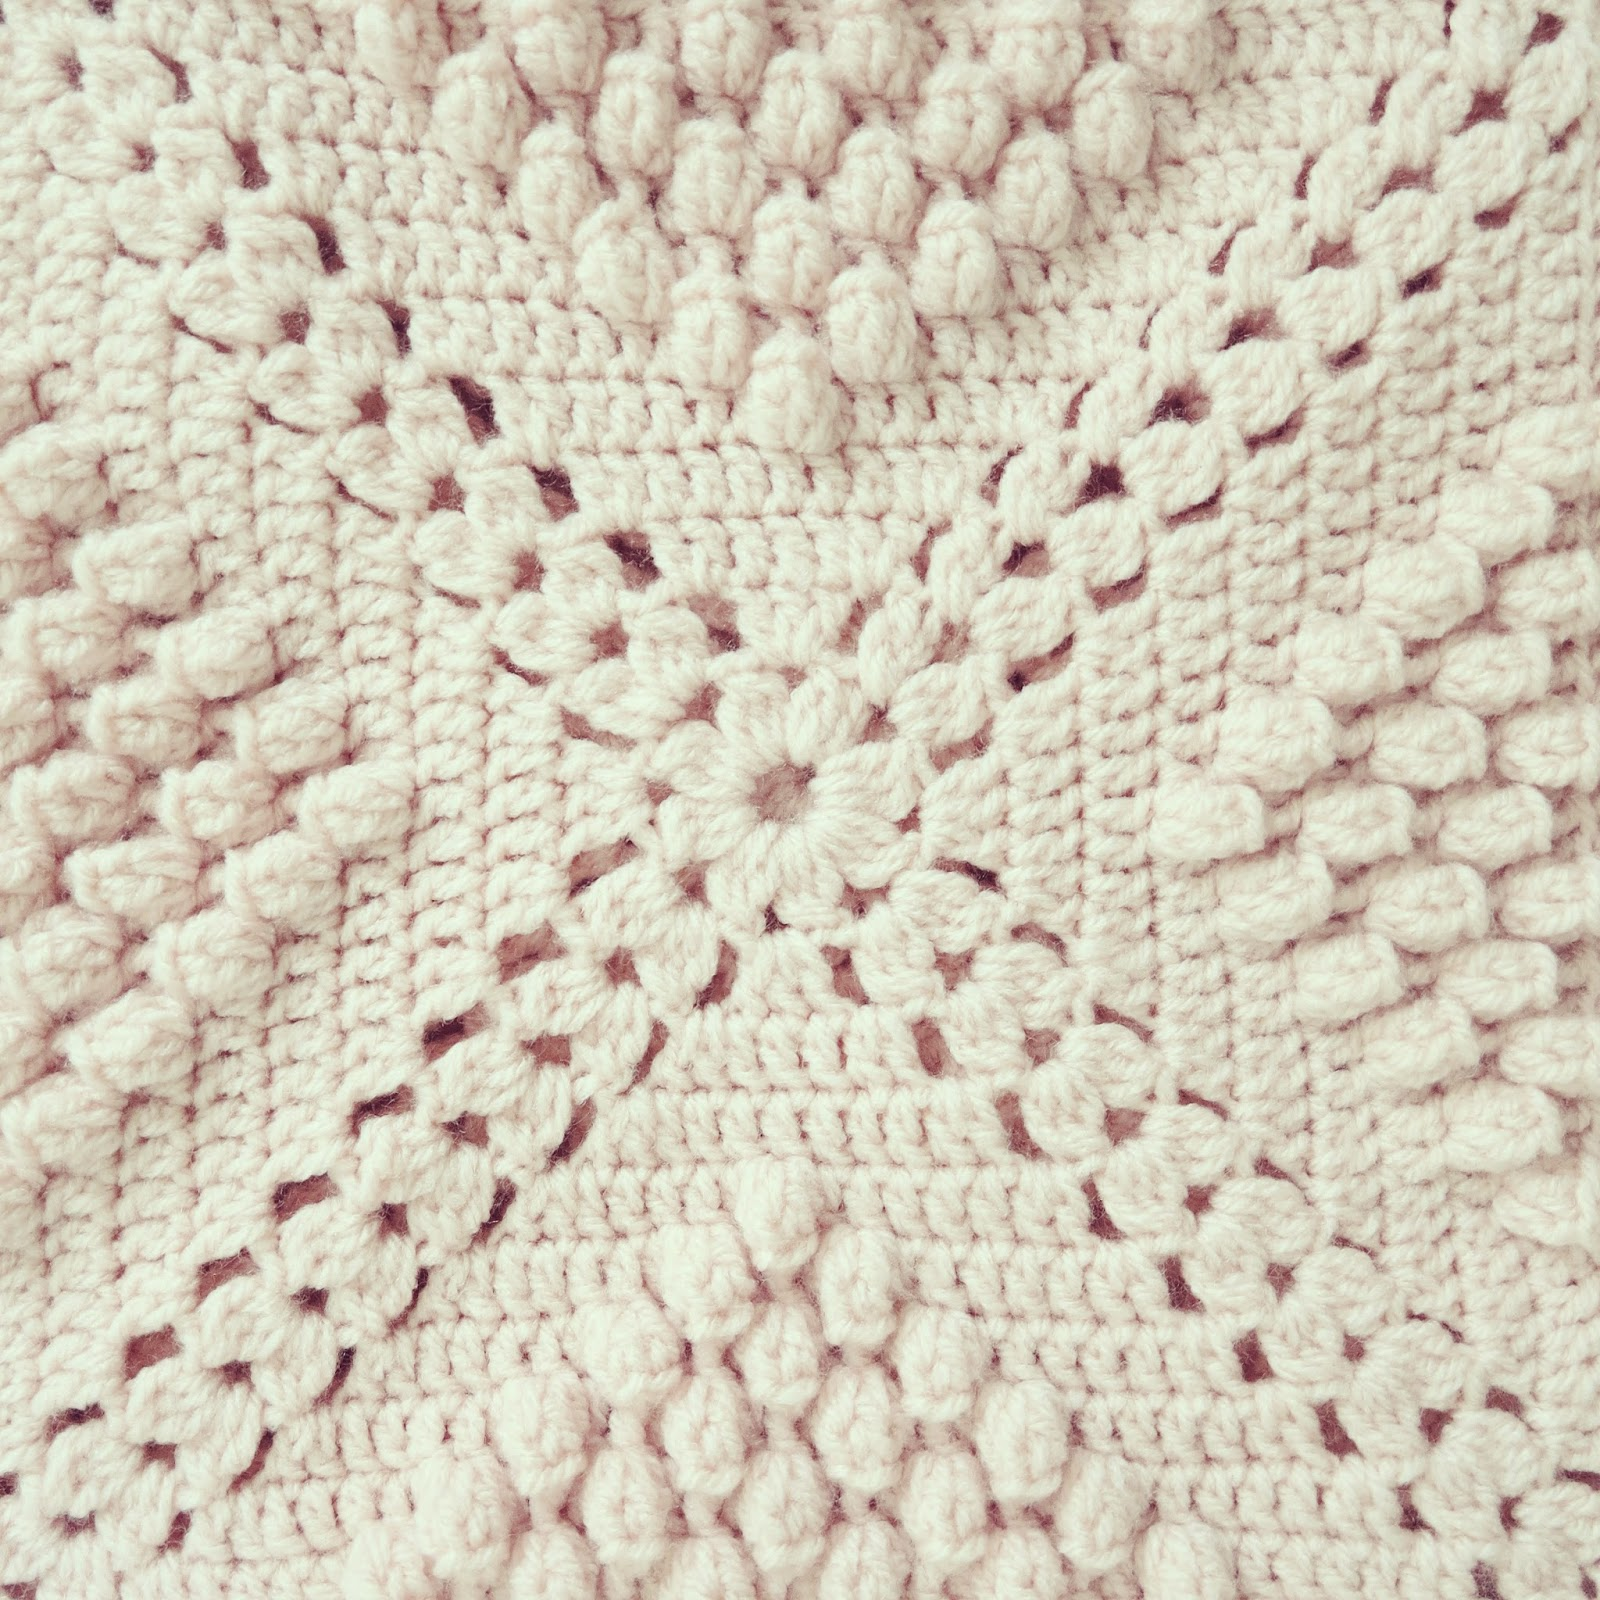 Crochet Patterns Com : ... crochet, popcorn, bobble stitch throw, blanket, powder pink, pattern